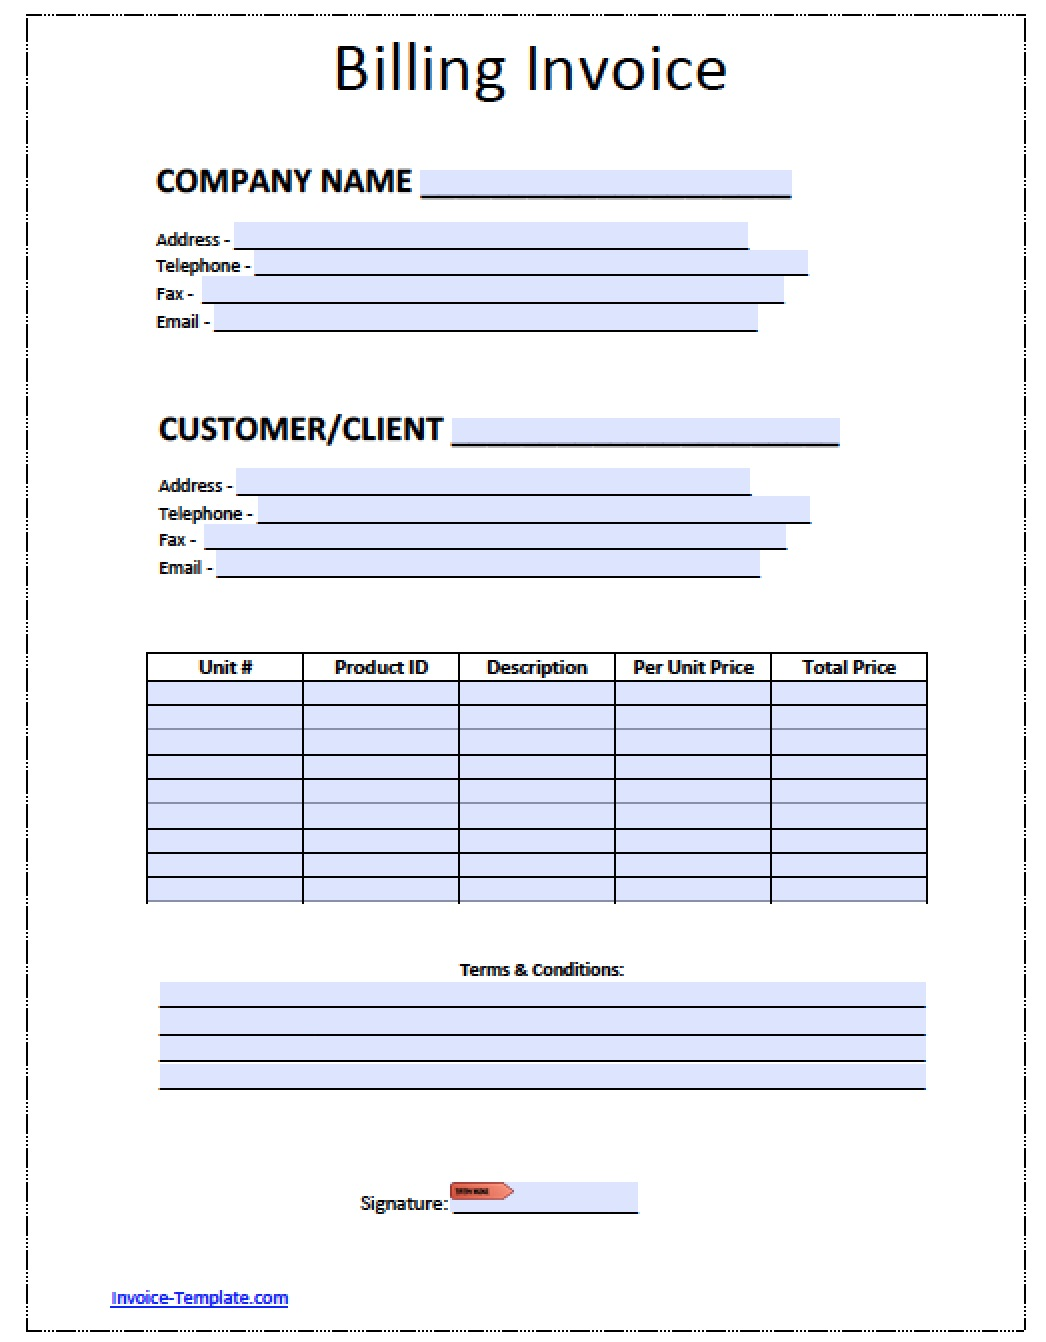 Billing Invoice Templates Investasibimbel Sample Of Billing